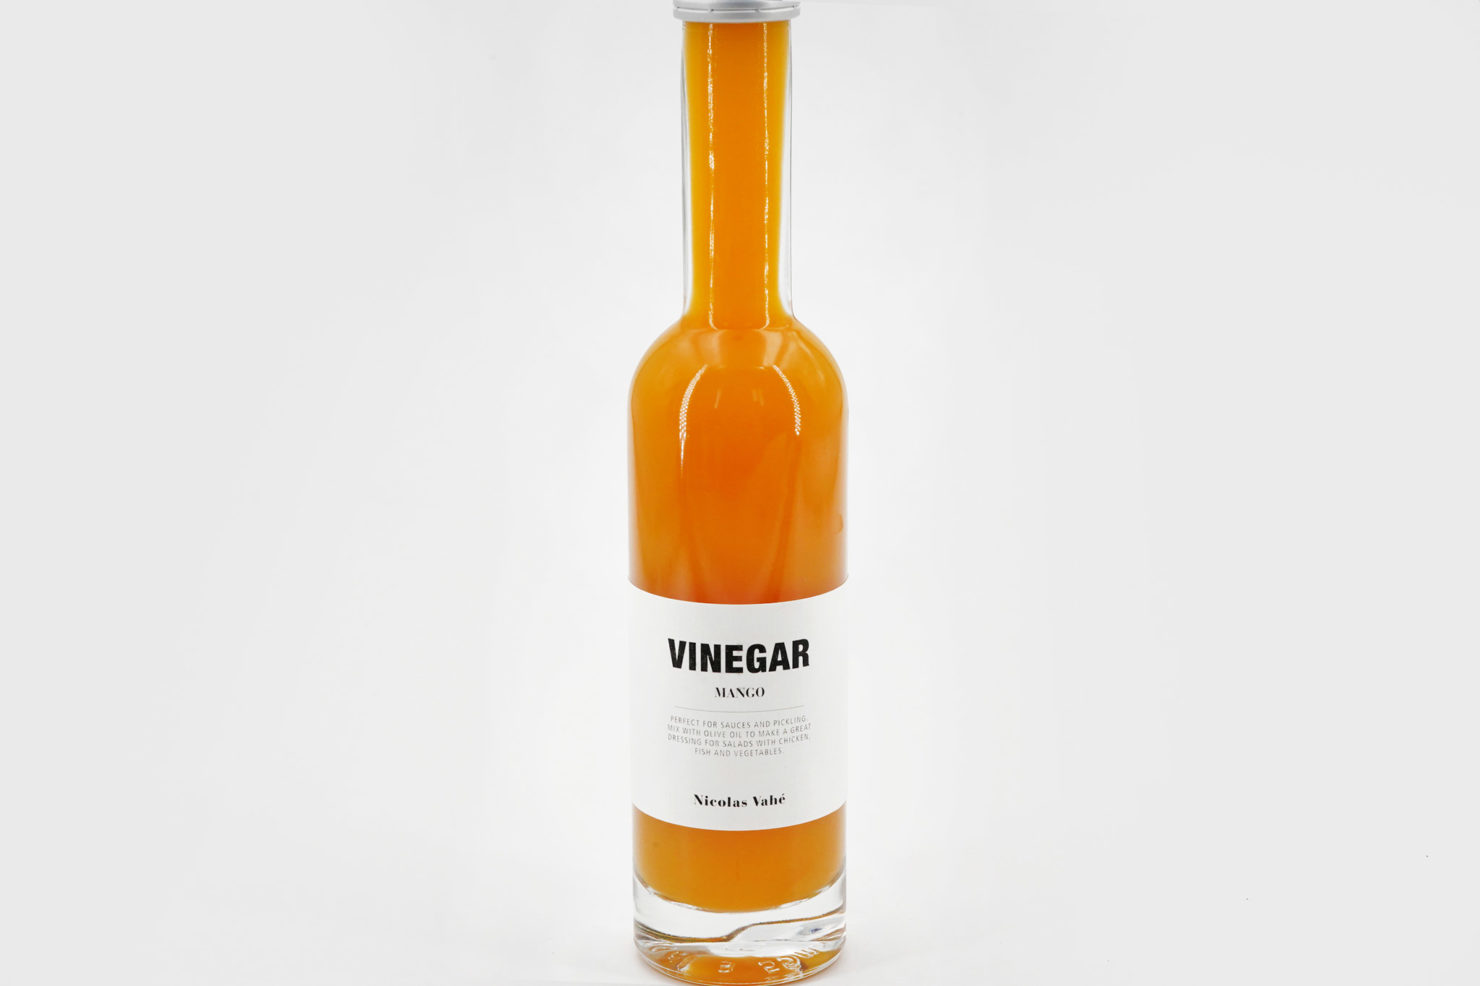 VINEGAR MANGO 200 ML - NICOLAS VAHE